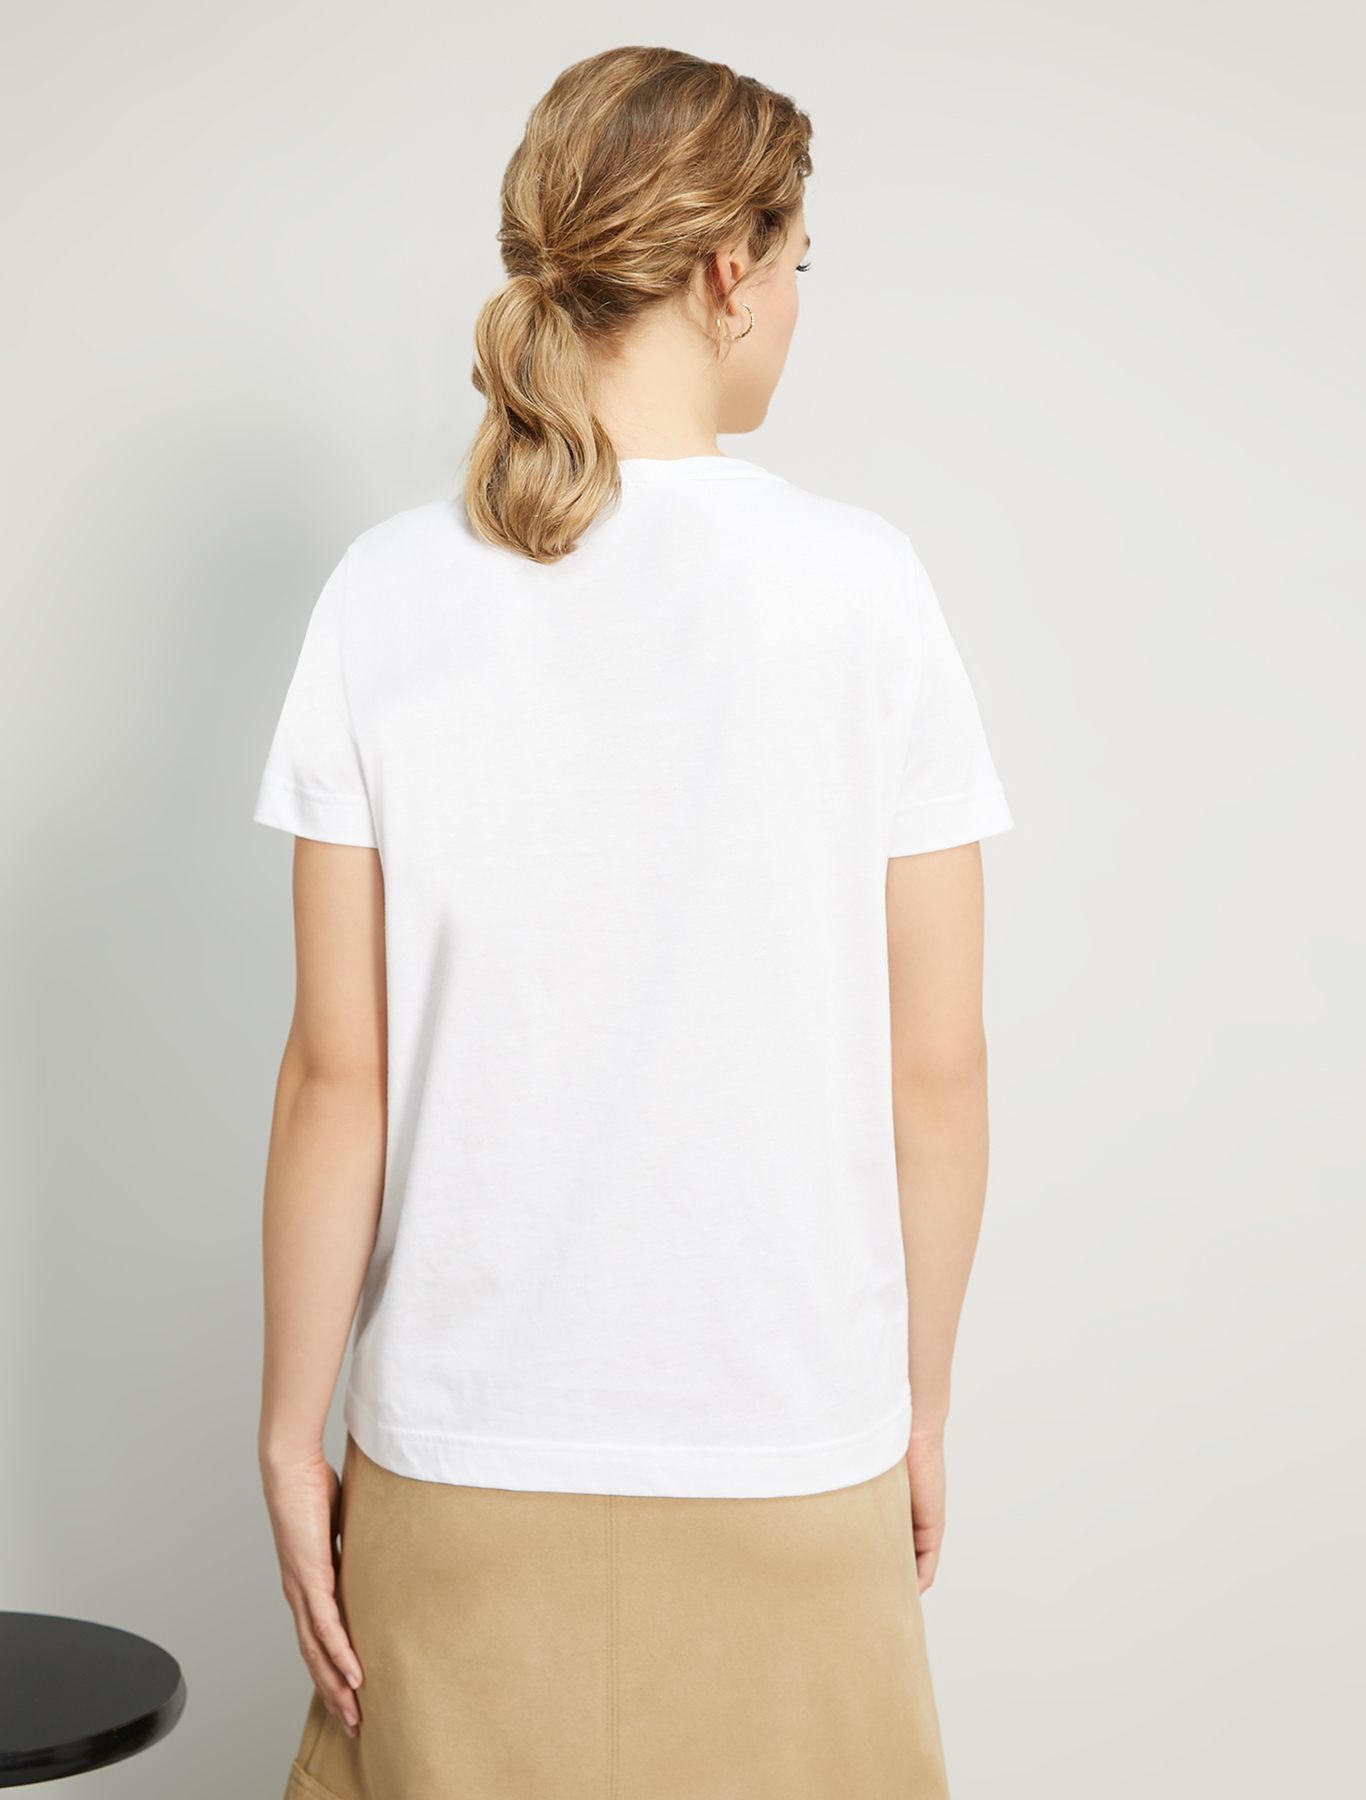 Embroidered sequin T-shirt - ivory - pennyblack